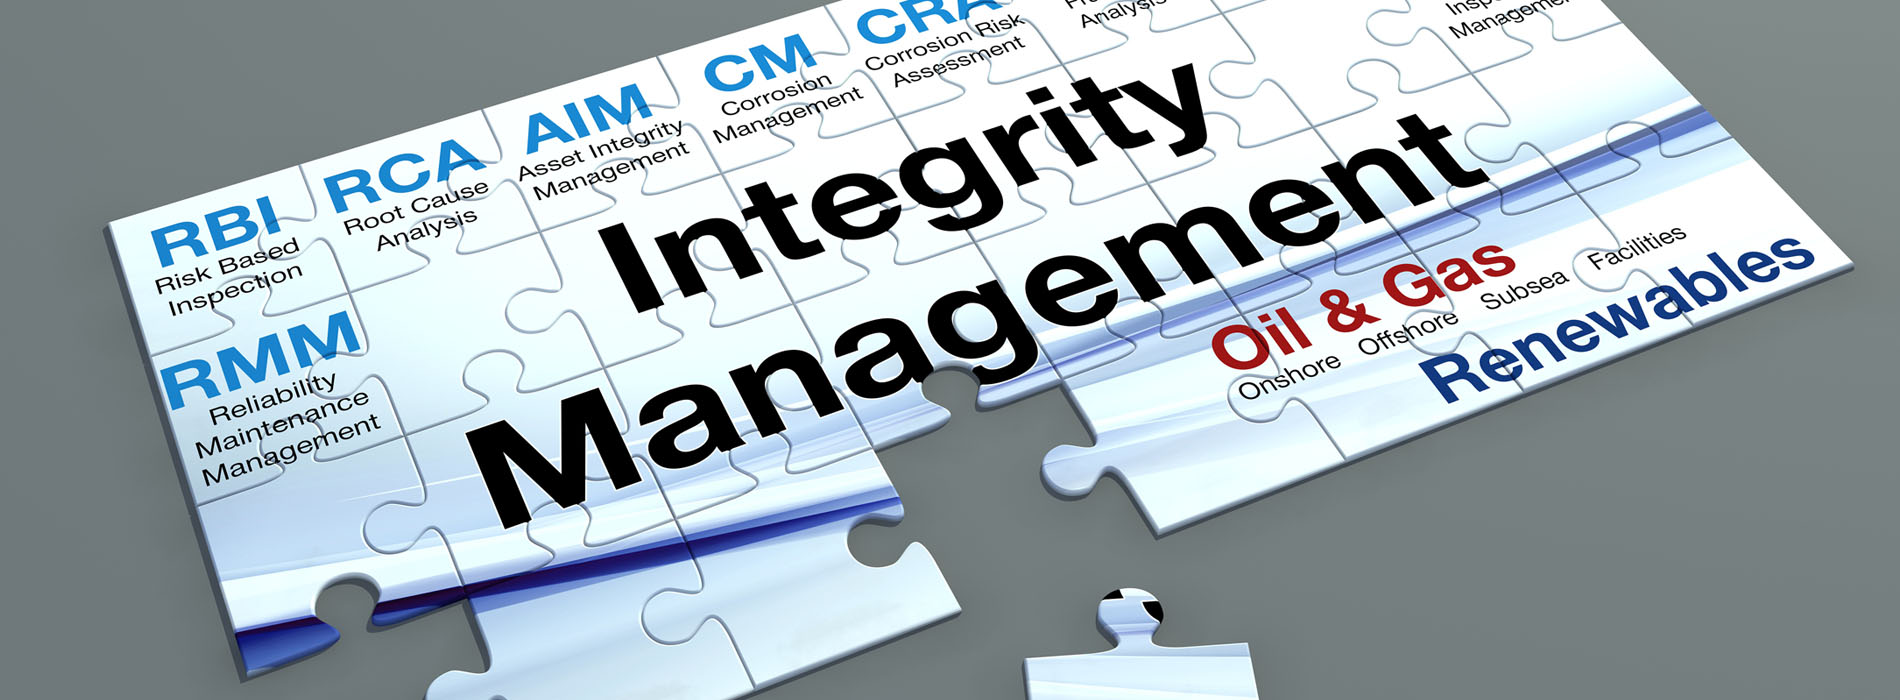 Integrity Management puzzle